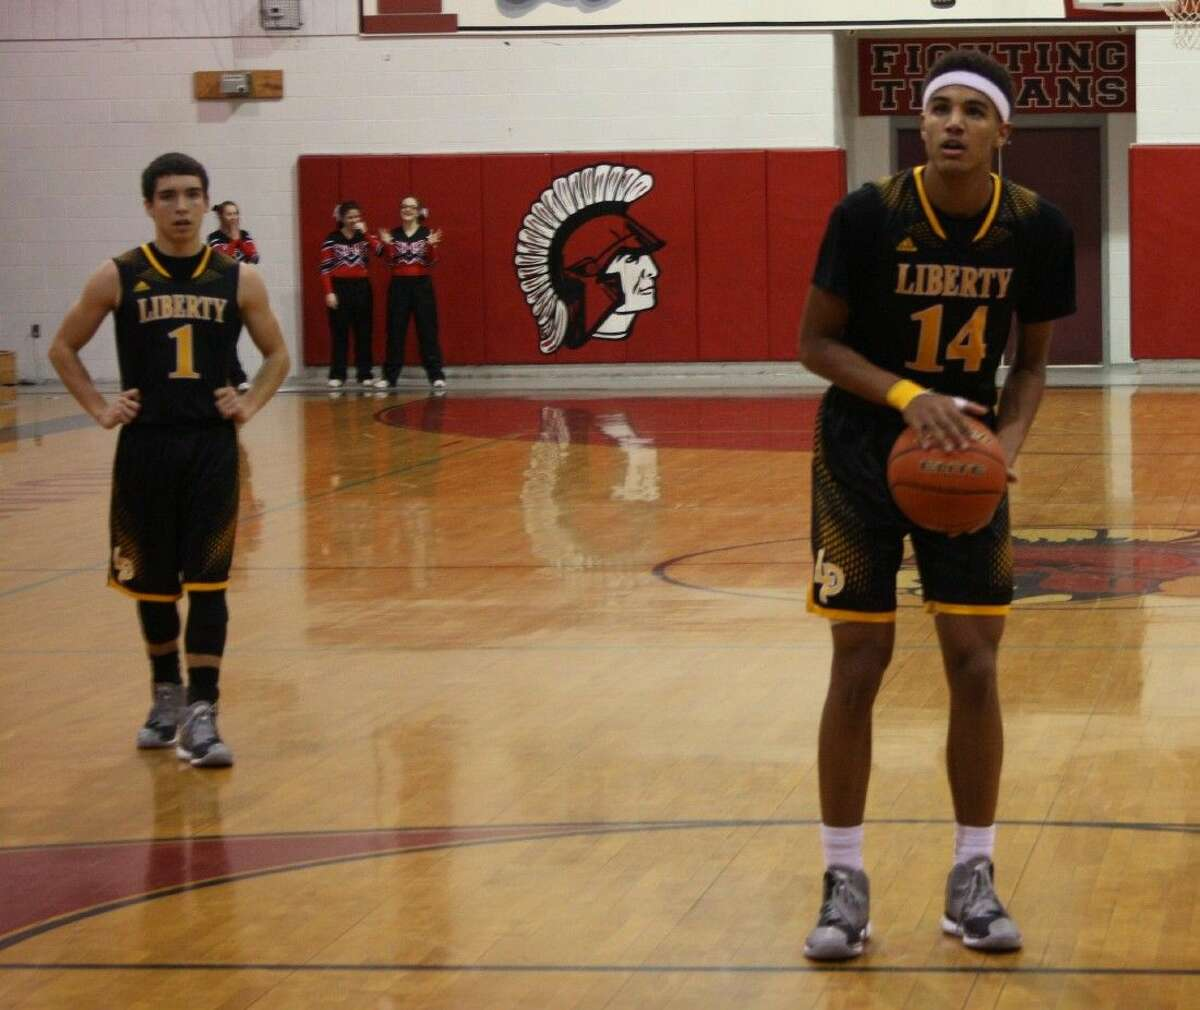 Trevor Pierce (1) of the Liberty Panthers watches as Darien Mallet (14) prepares to make a free throw.